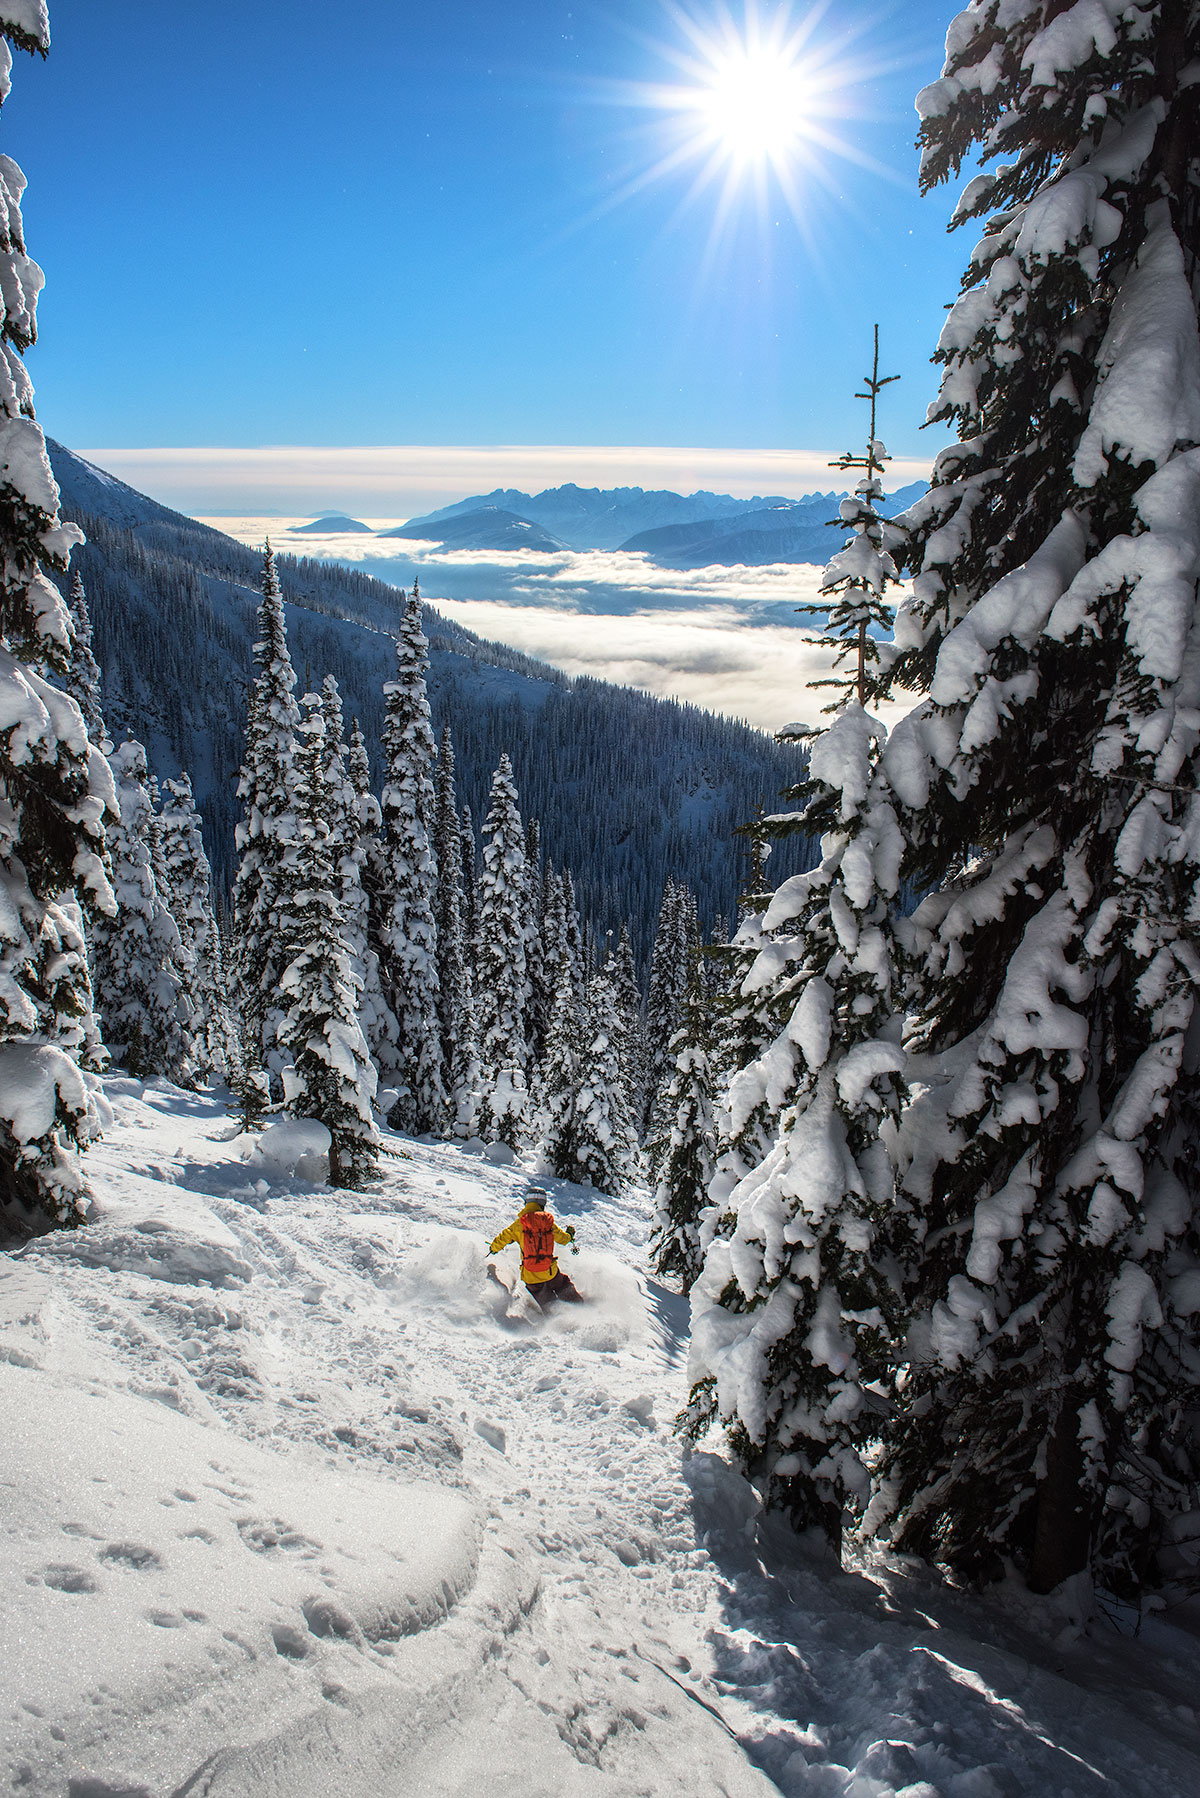 austin-trigg-patagonia-banff-alberta-winter-revelstoke-side-country-canada-trip-adventure-outside-snow-forest-backcountry-skiing.jpg